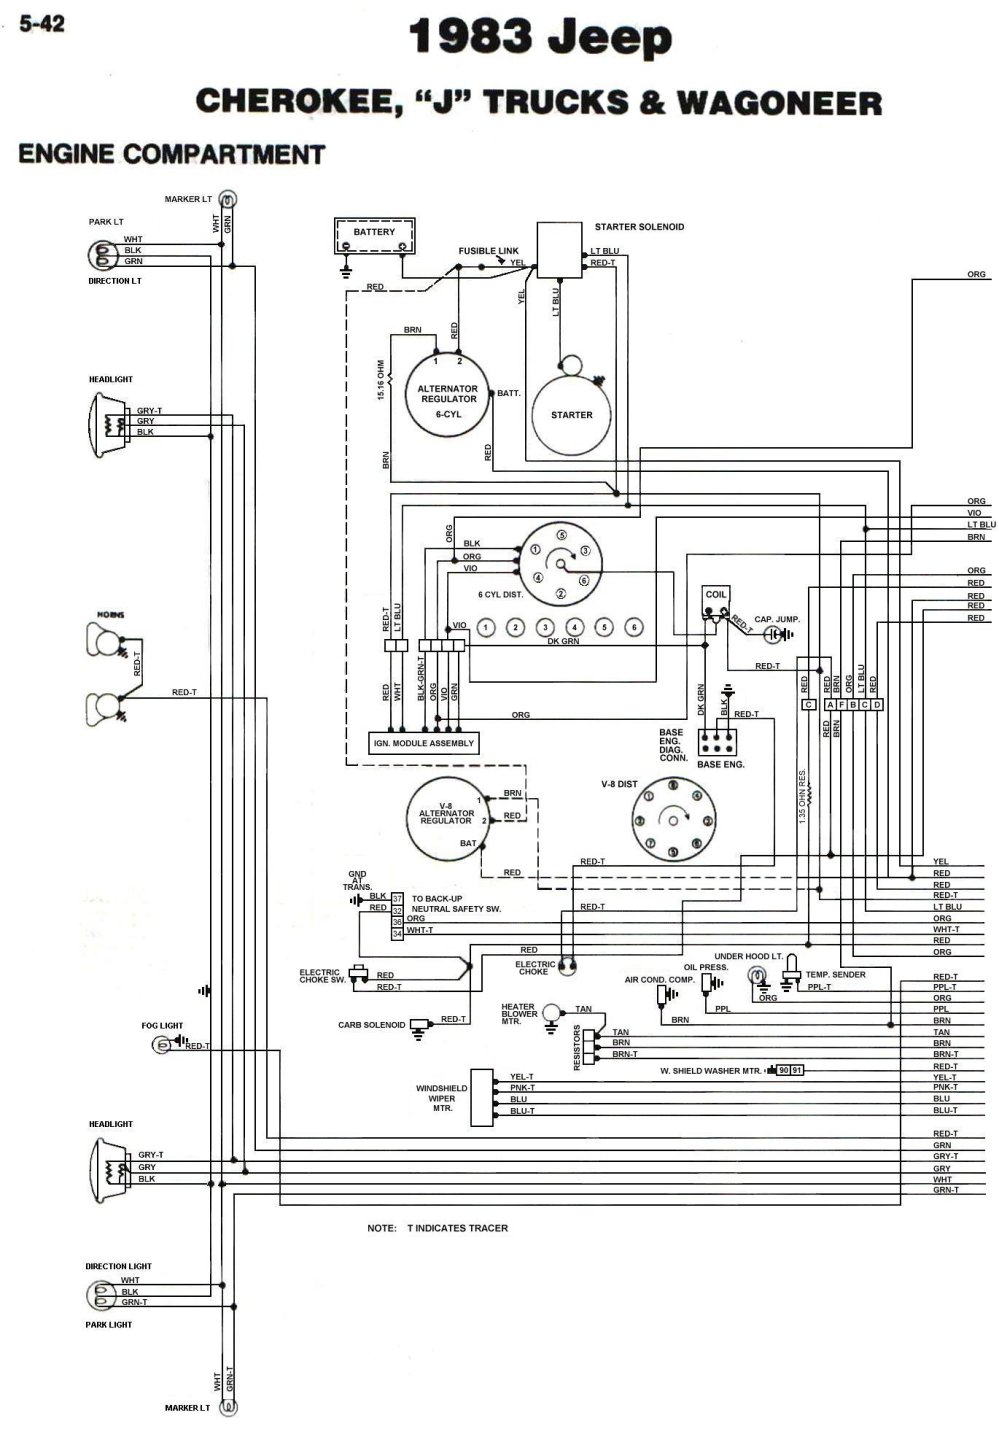 medium resolution of 83 jeep cj7 engine wiring diagram wiring diagram post 1982 cj7 engine diagram